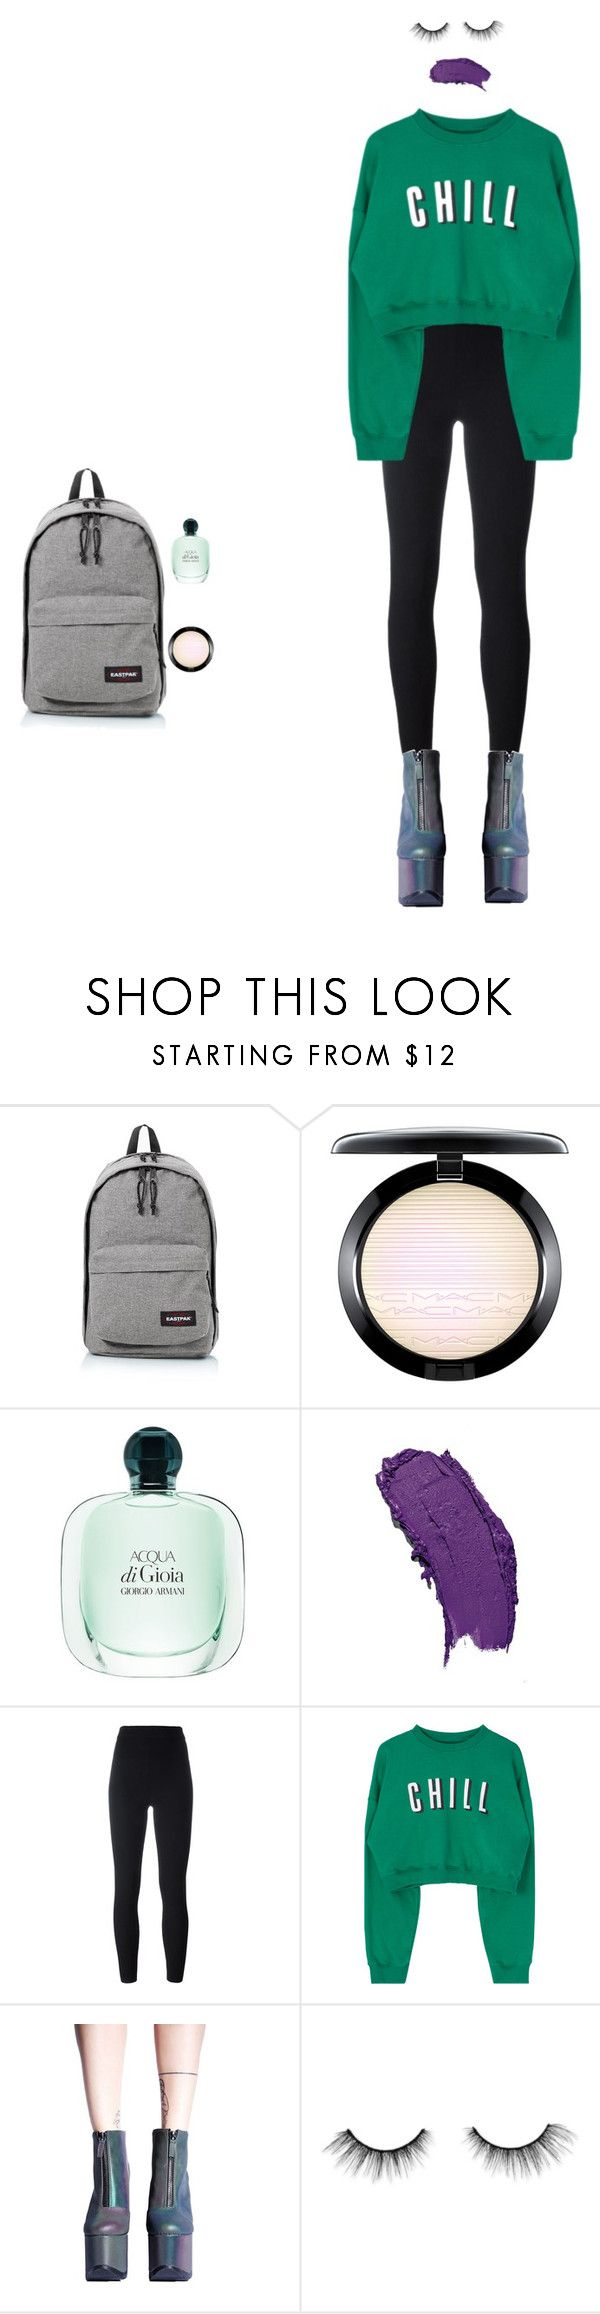 """La rouge à lèvres violet à l'école"" by excessive-yawning ❤ liked on Polyvore featuring beauty, Eastpak, MAC Cosmetics, adidas Originals, Y.R.U. and tarte"